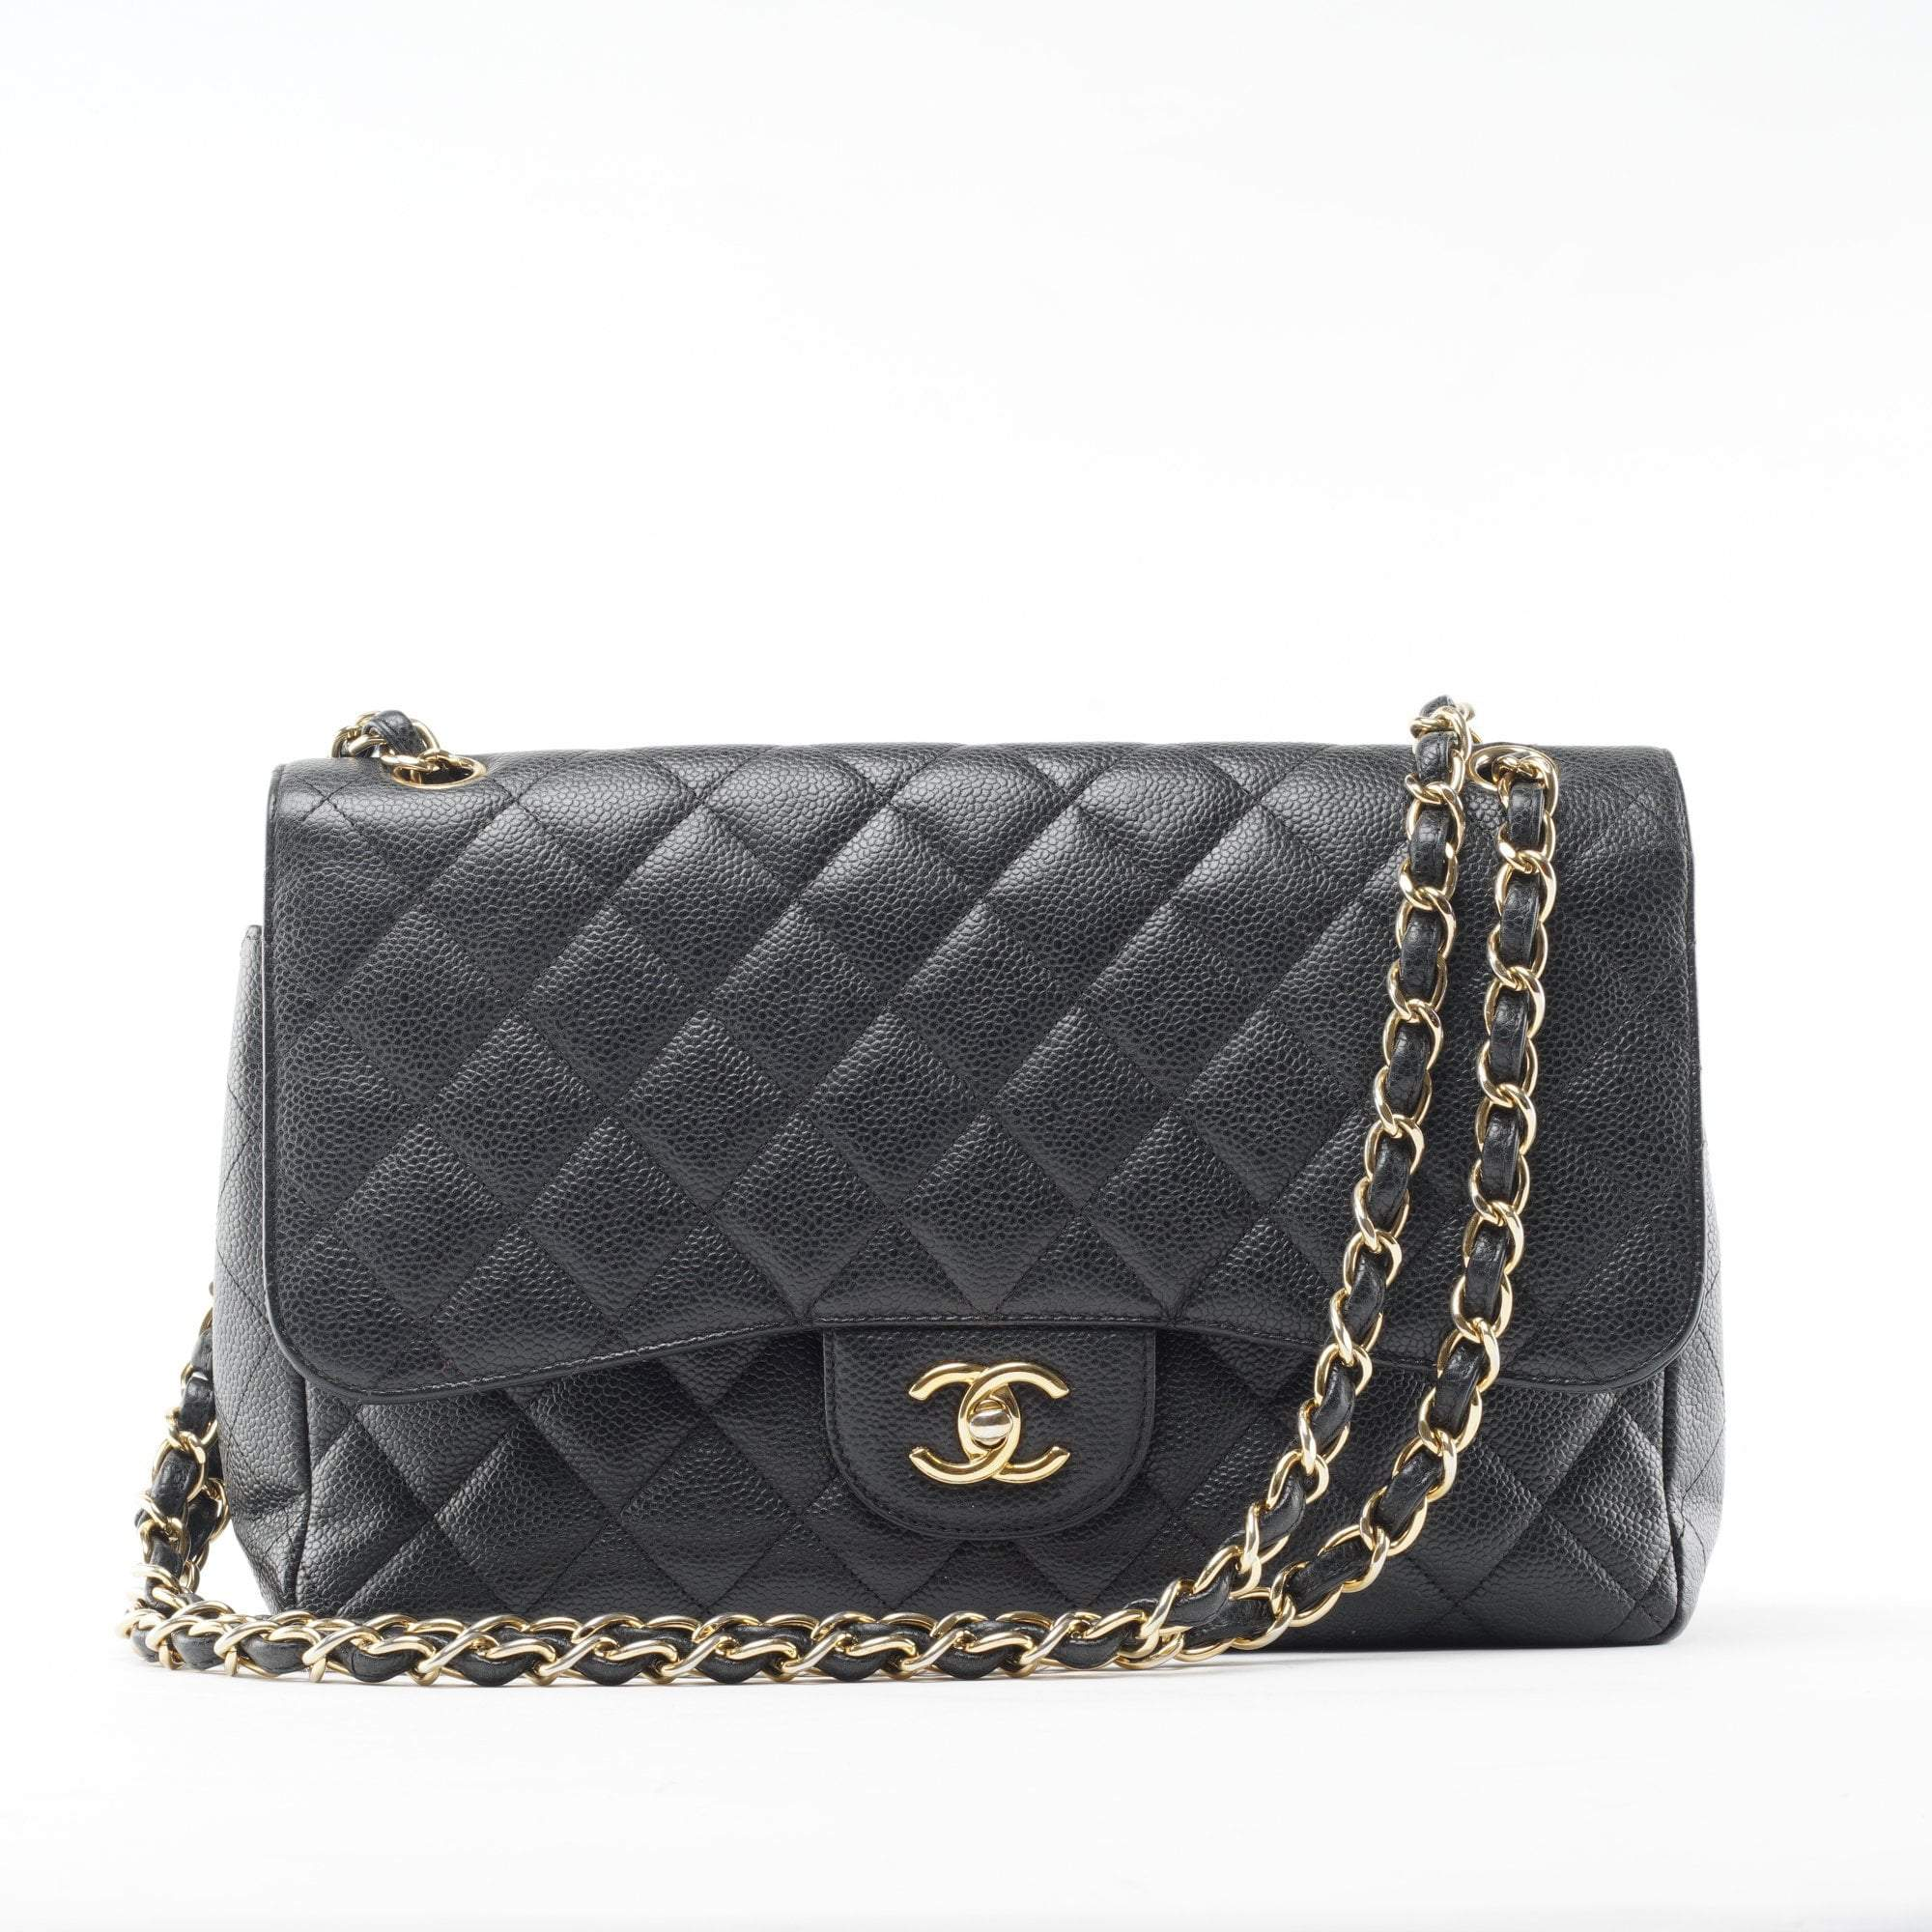 Chanel Black Quilted Caviar Jumbo Classic Double Flap Bag – Garderobe 08a8d7814a4bb